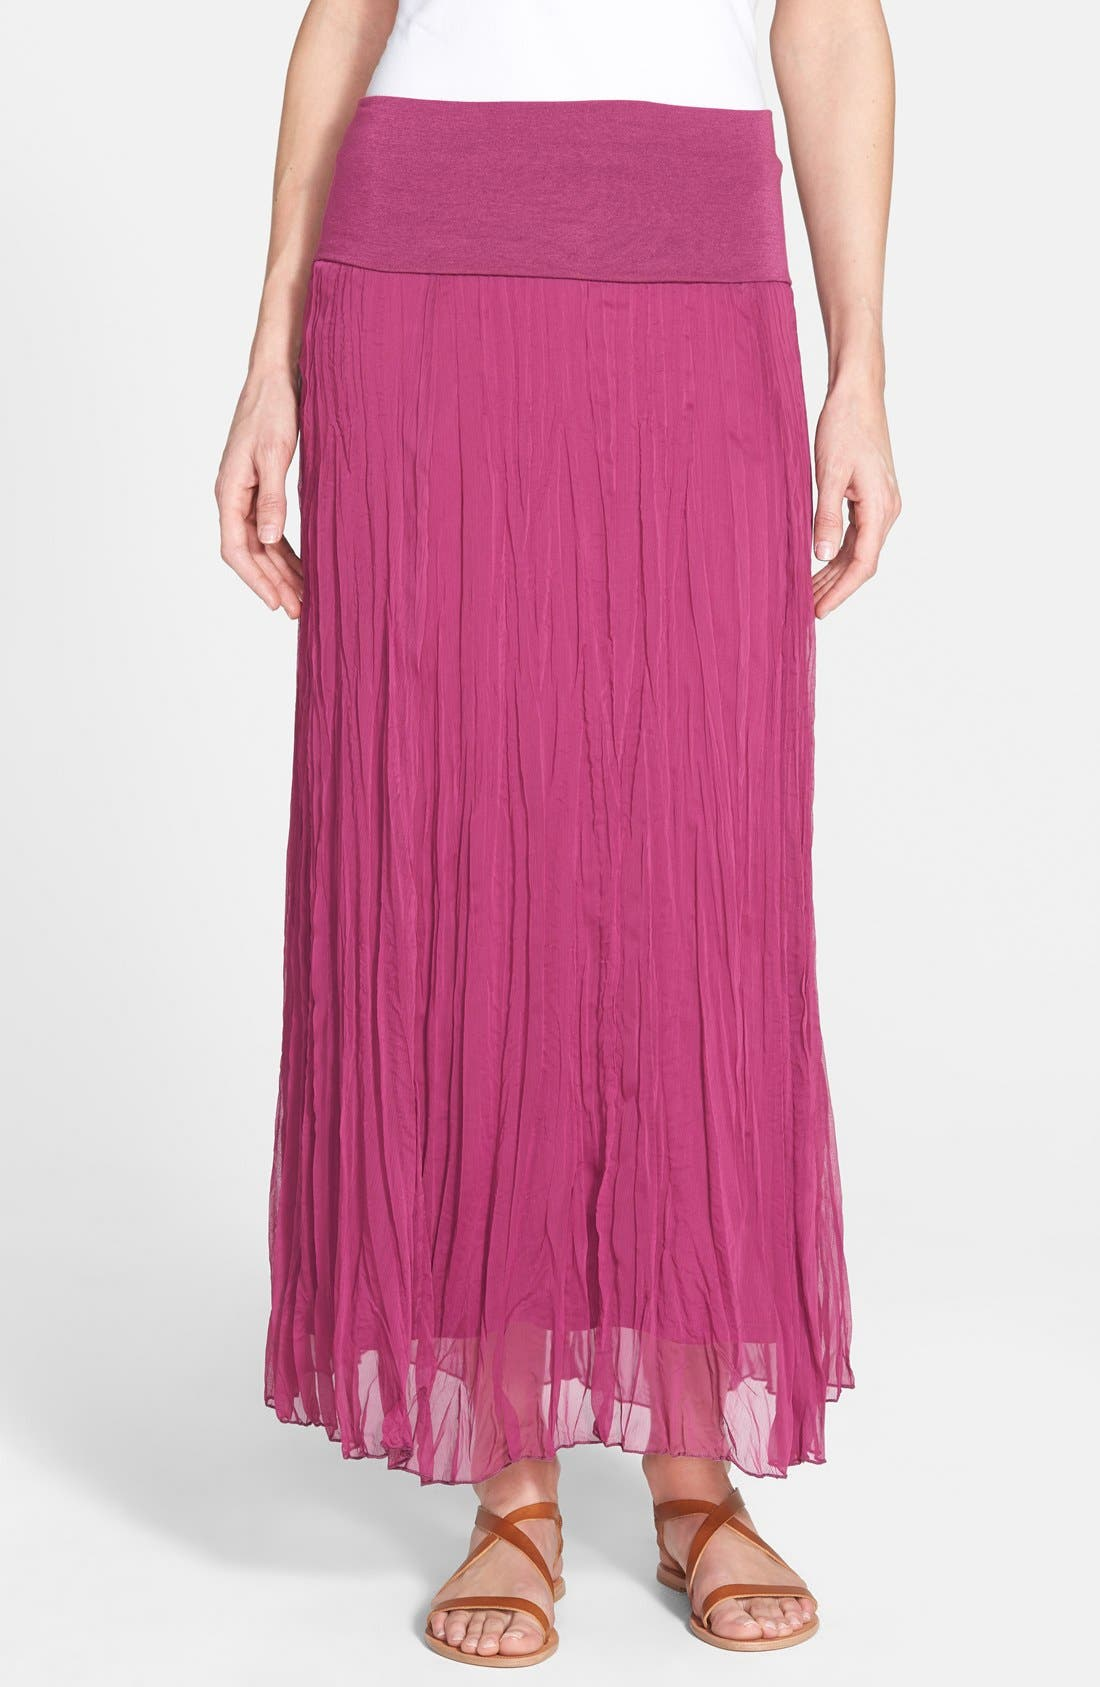 Alternate Image 1 Selected - Max & Mia Crinkled Maxi Skirt (Regular & Petite)